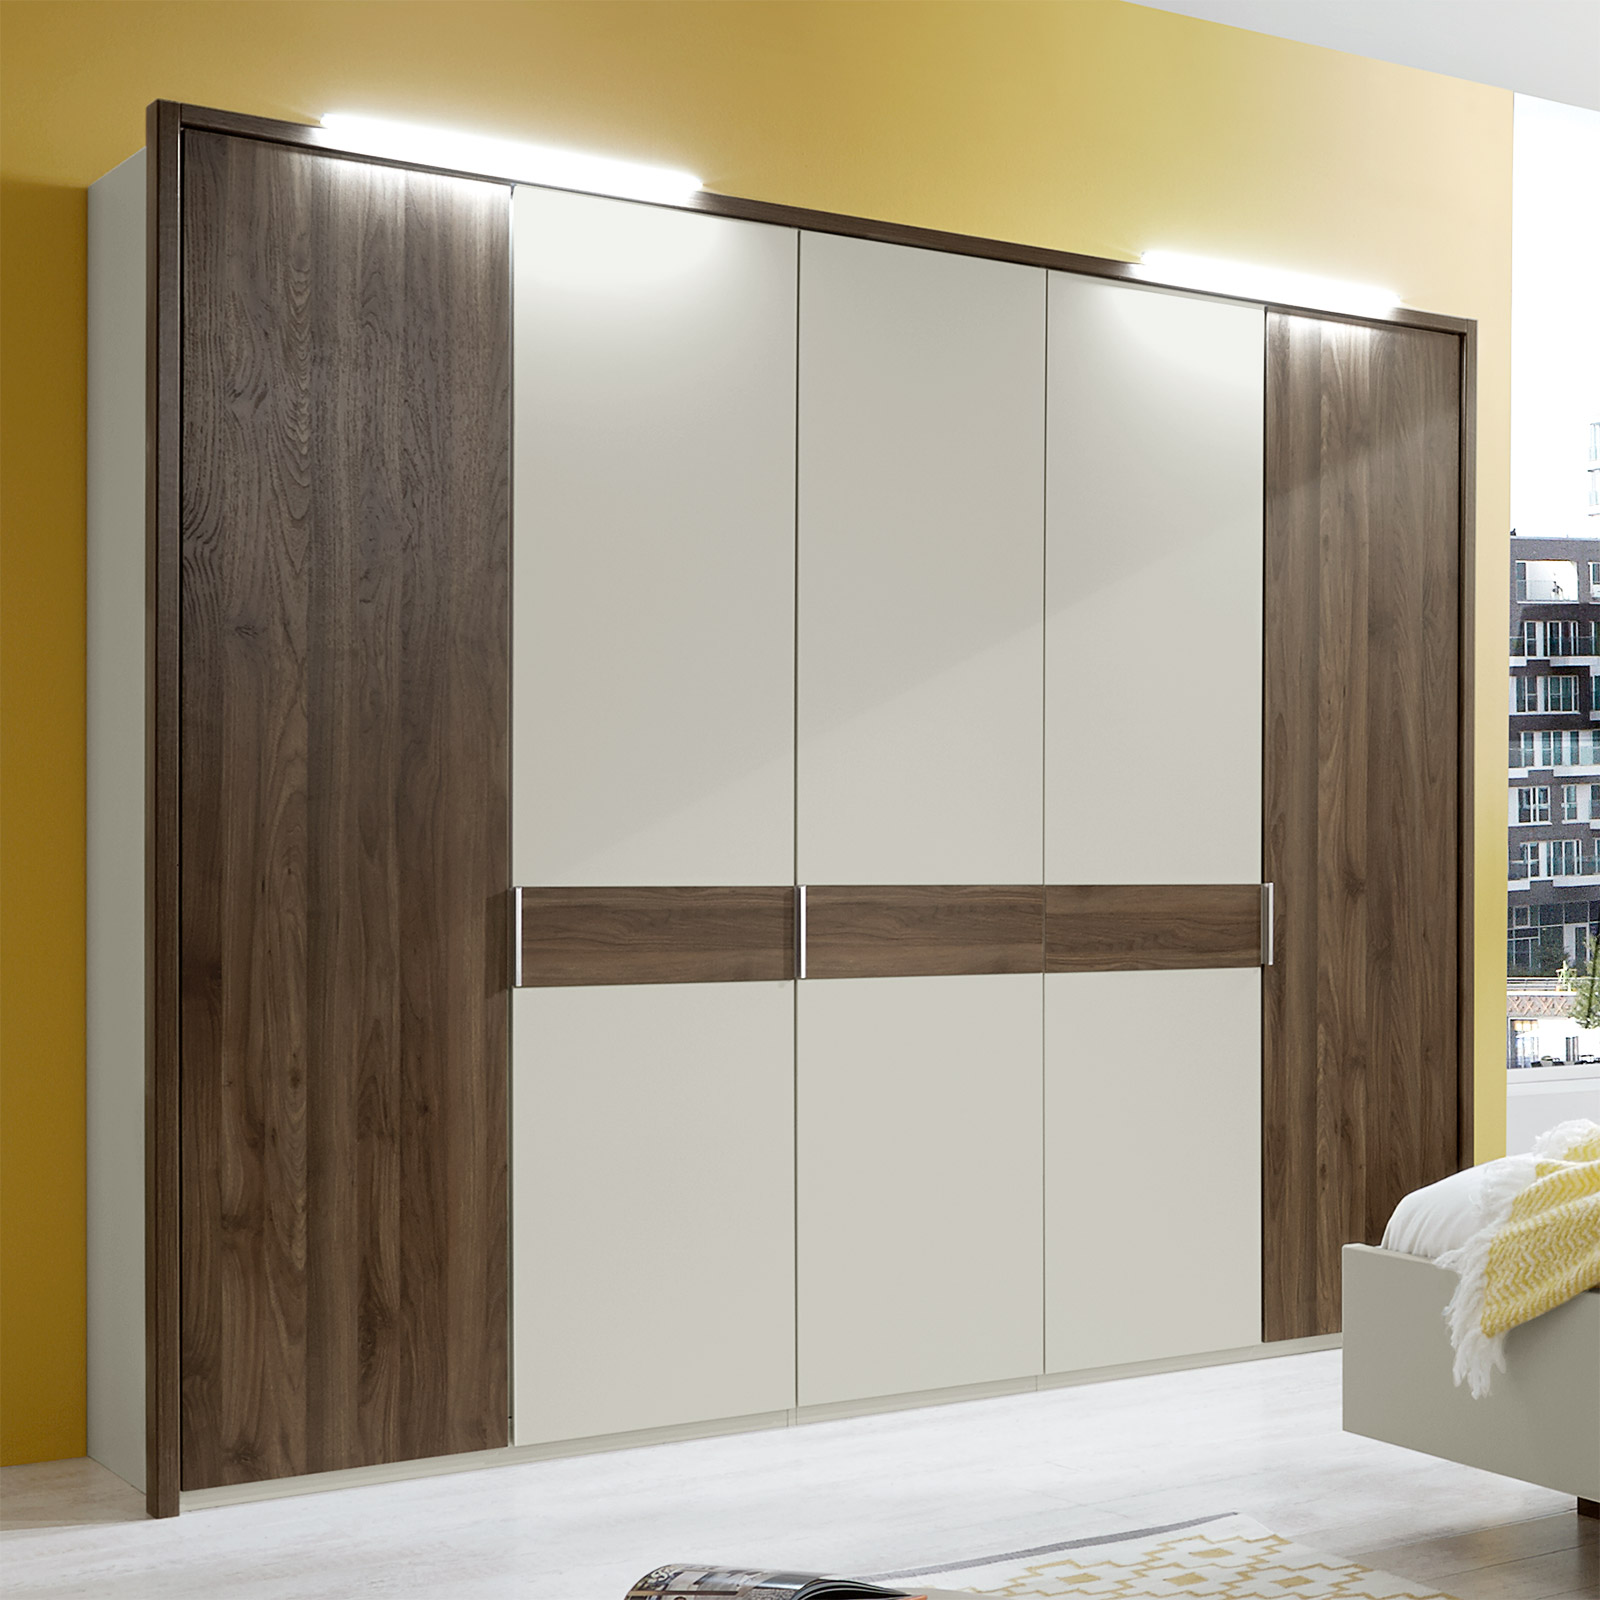 dekor kleiderschrank mit dreht ren und passepartout rahmen moa. Black Bedroom Furniture Sets. Home Design Ideas